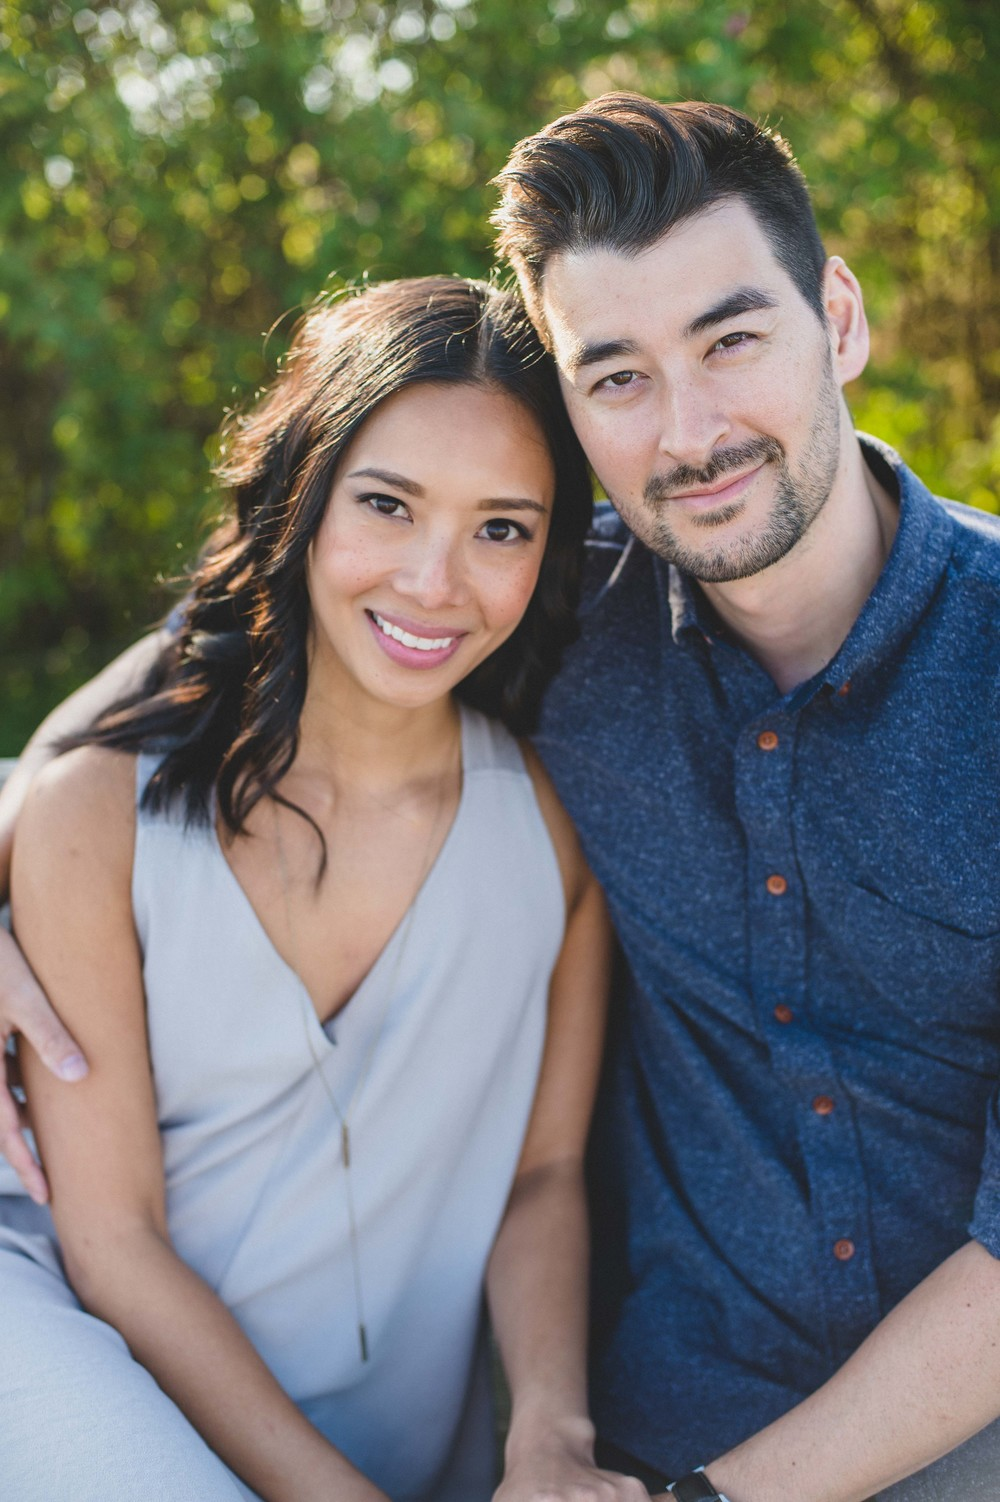 Vaccouver Steveston engagement photography Edward Lai Photography-11.jpg